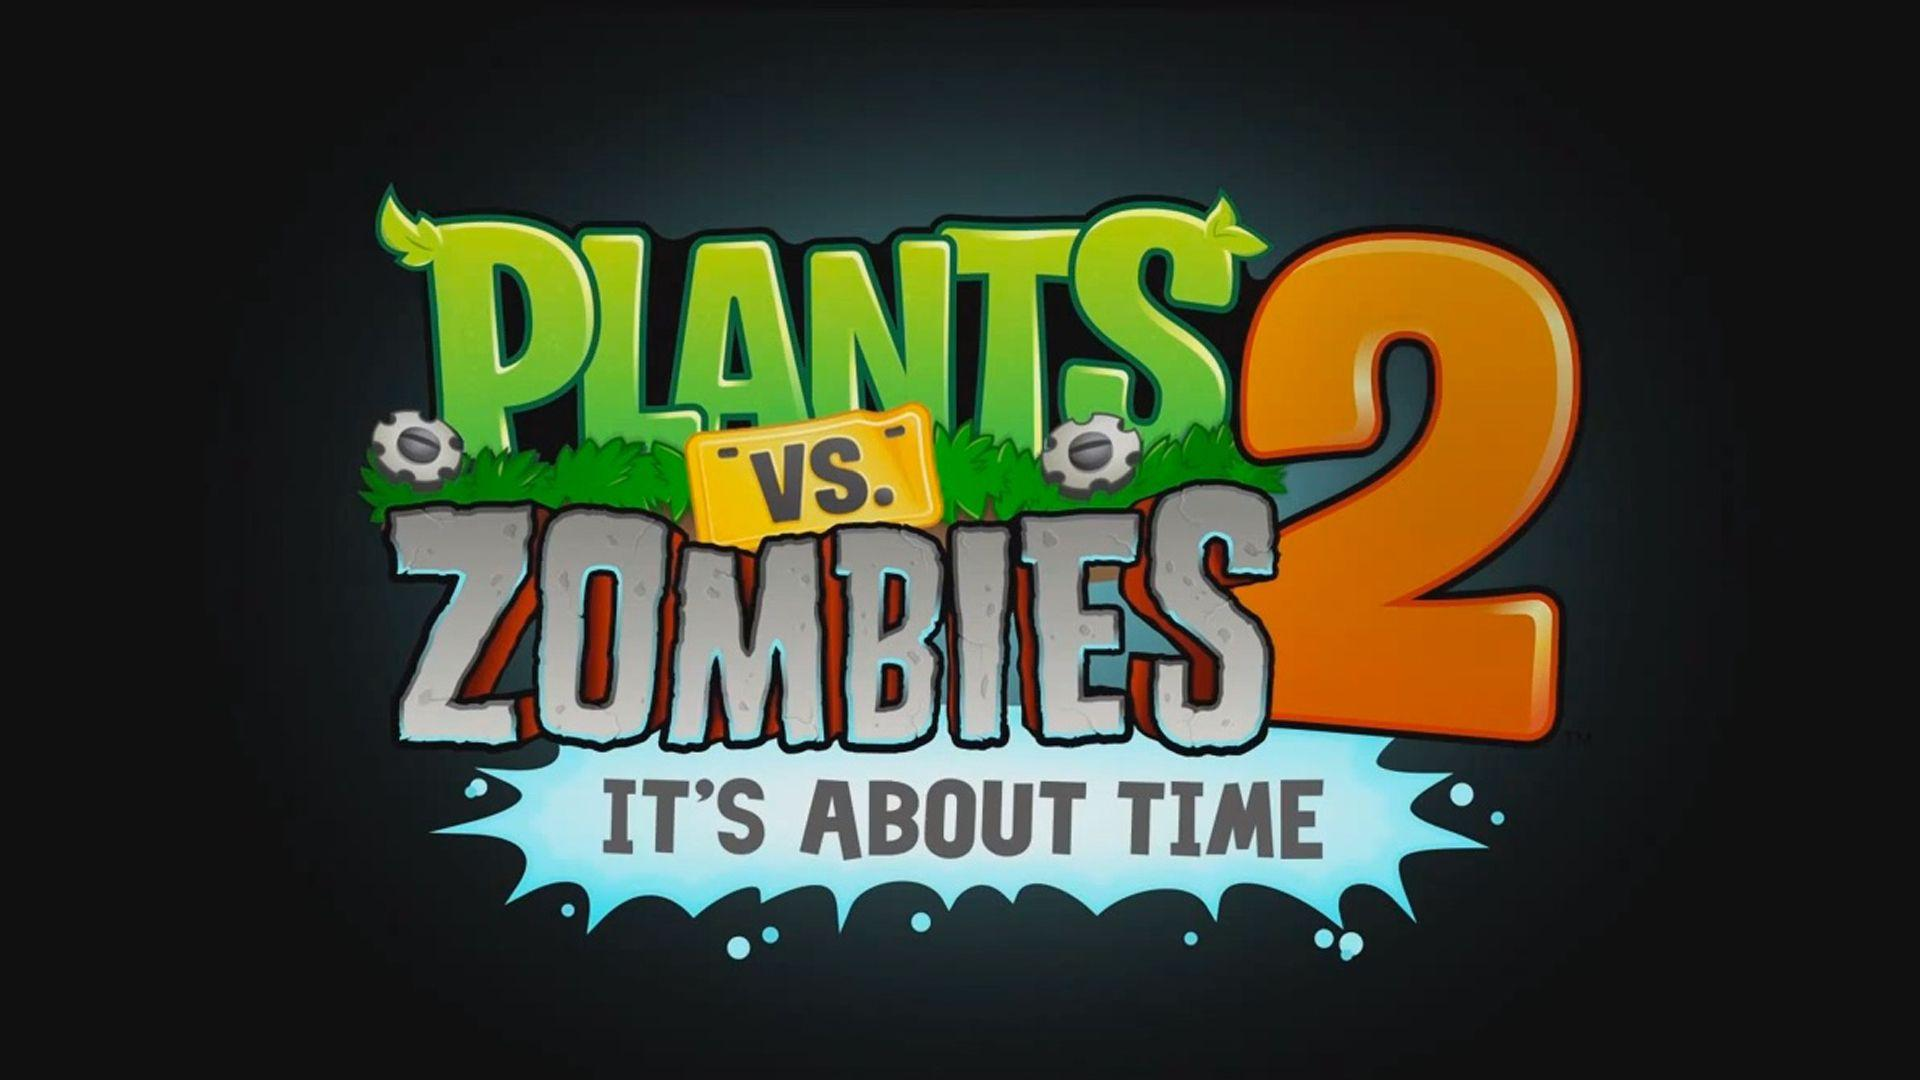 plants vs. zombies 2: it's about time wallpapers - wallpaper cave